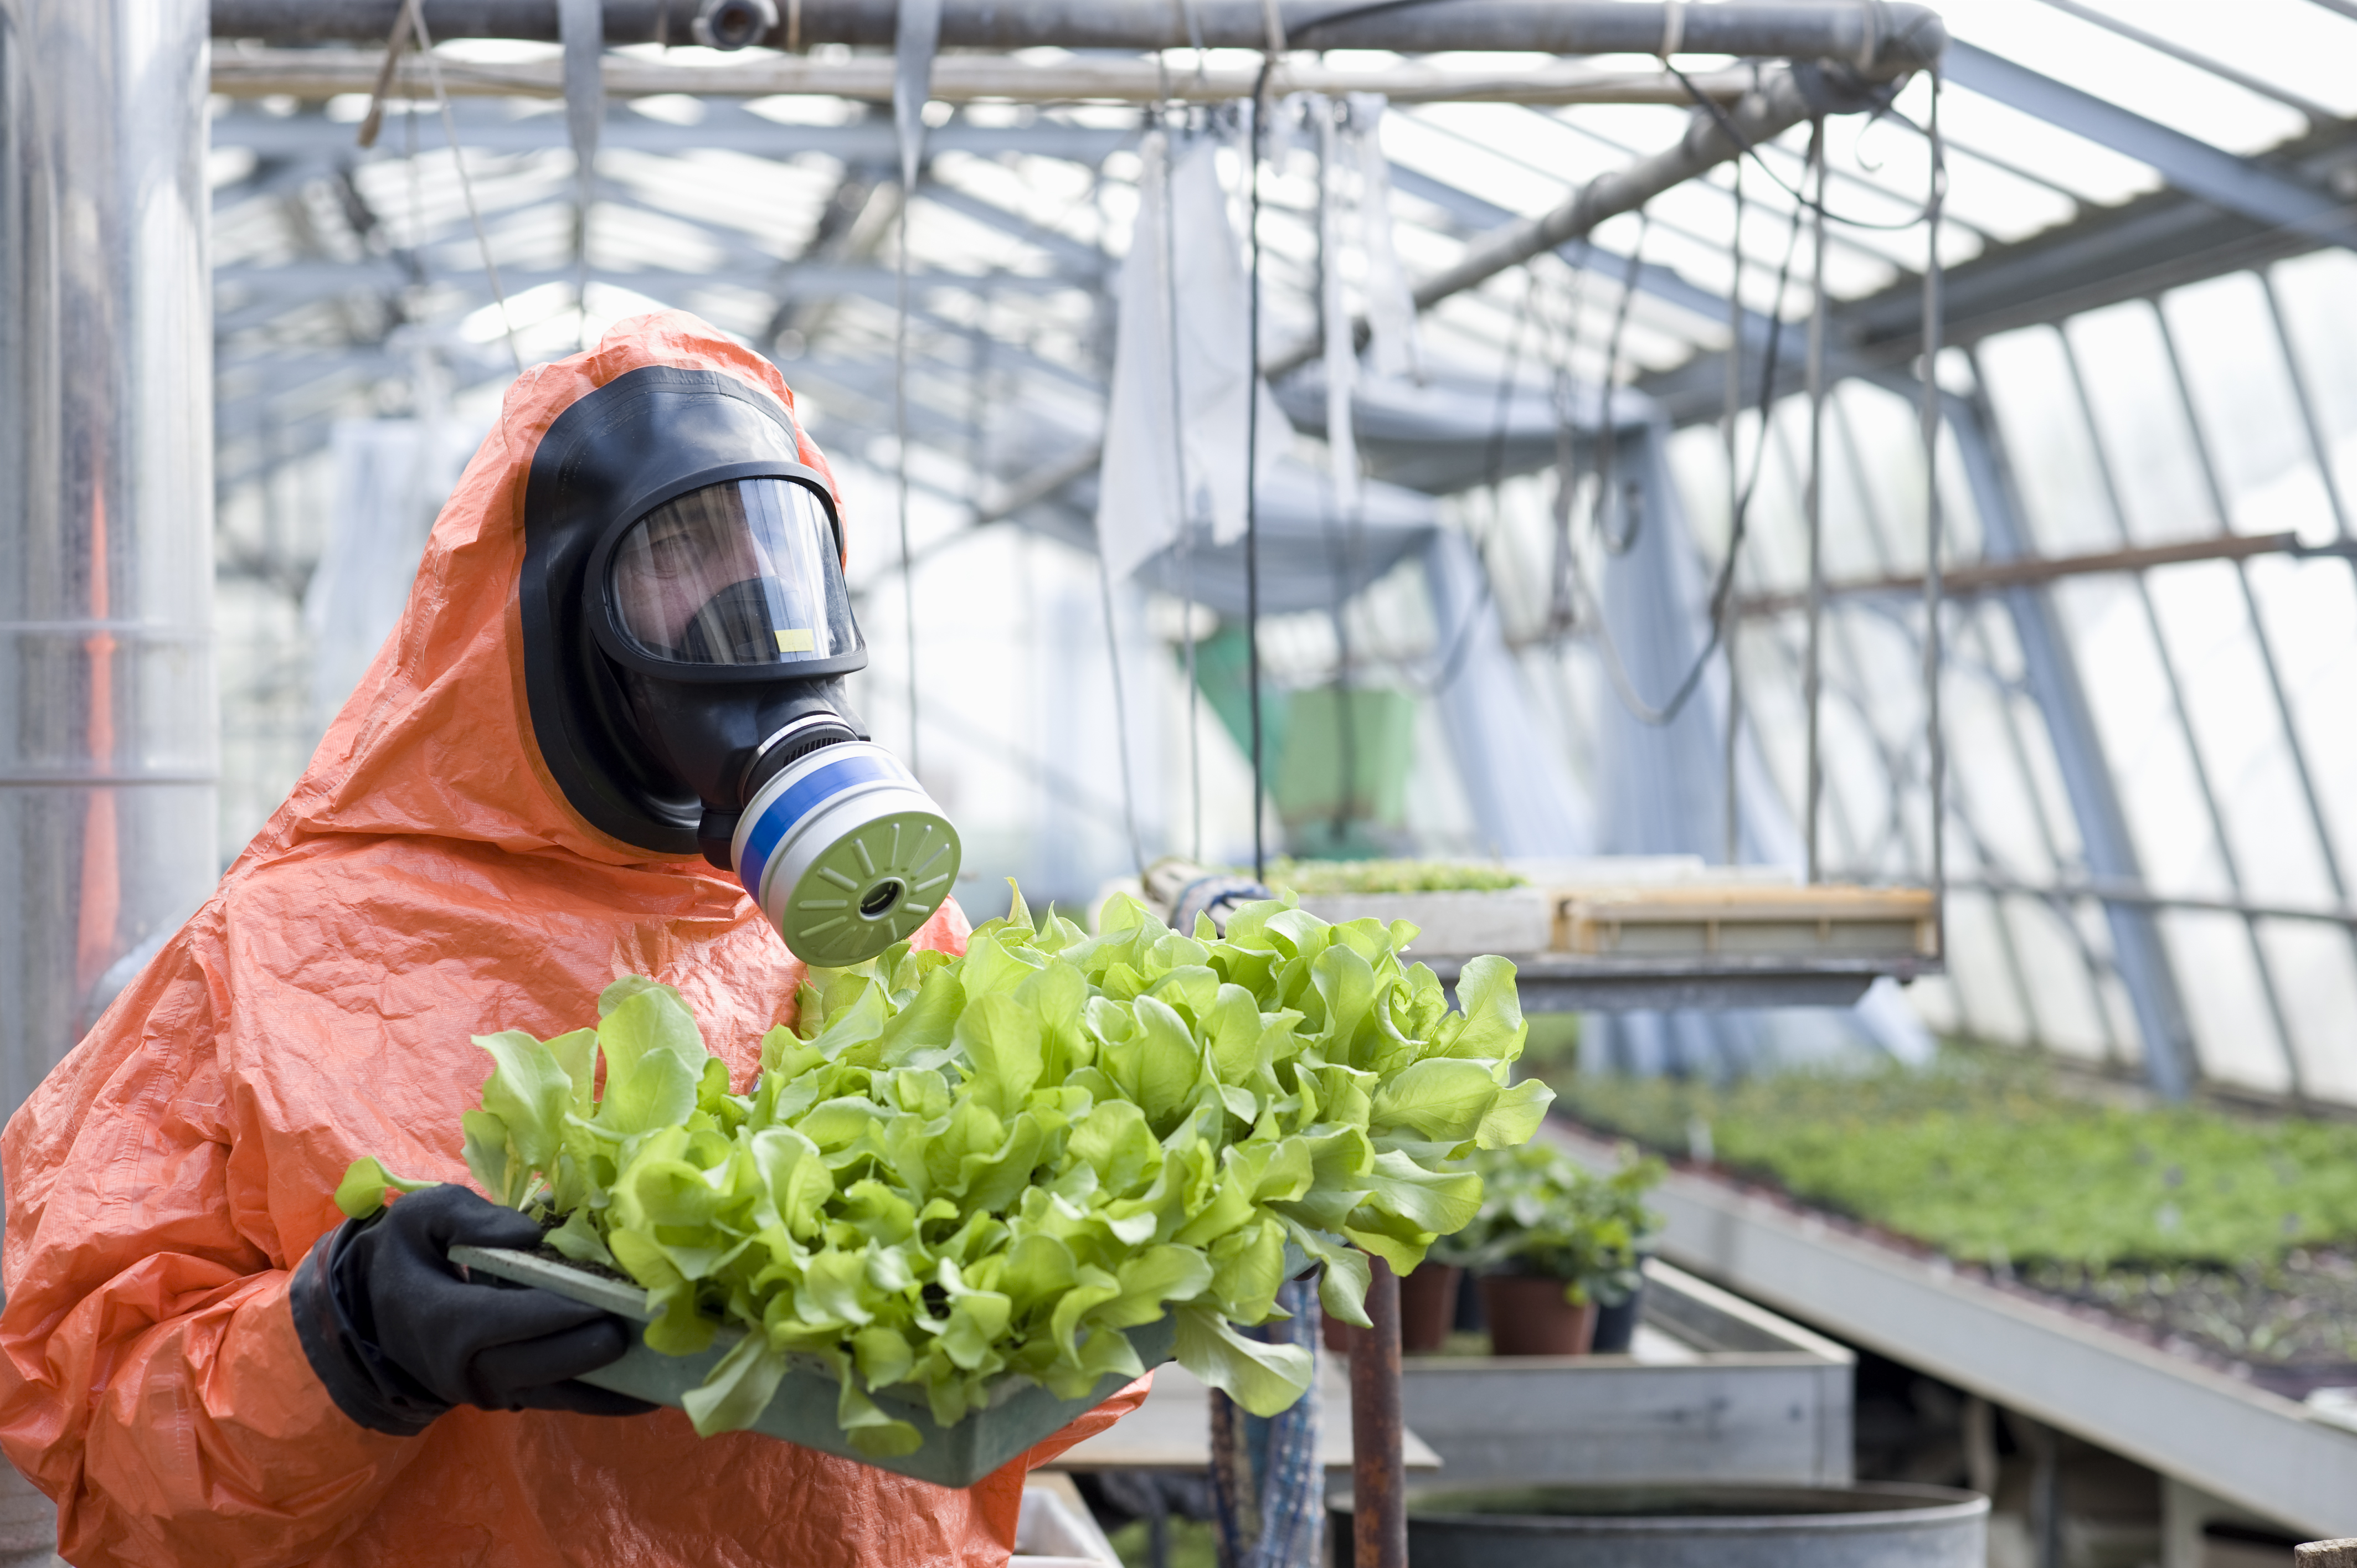 A person in a hazmat suit with a gas mask holds a tray of lettuce in a greenhouse, illustrating the idea that E. coli bacteria like the type that can be found in some types of vegetables can be deadly to humans.